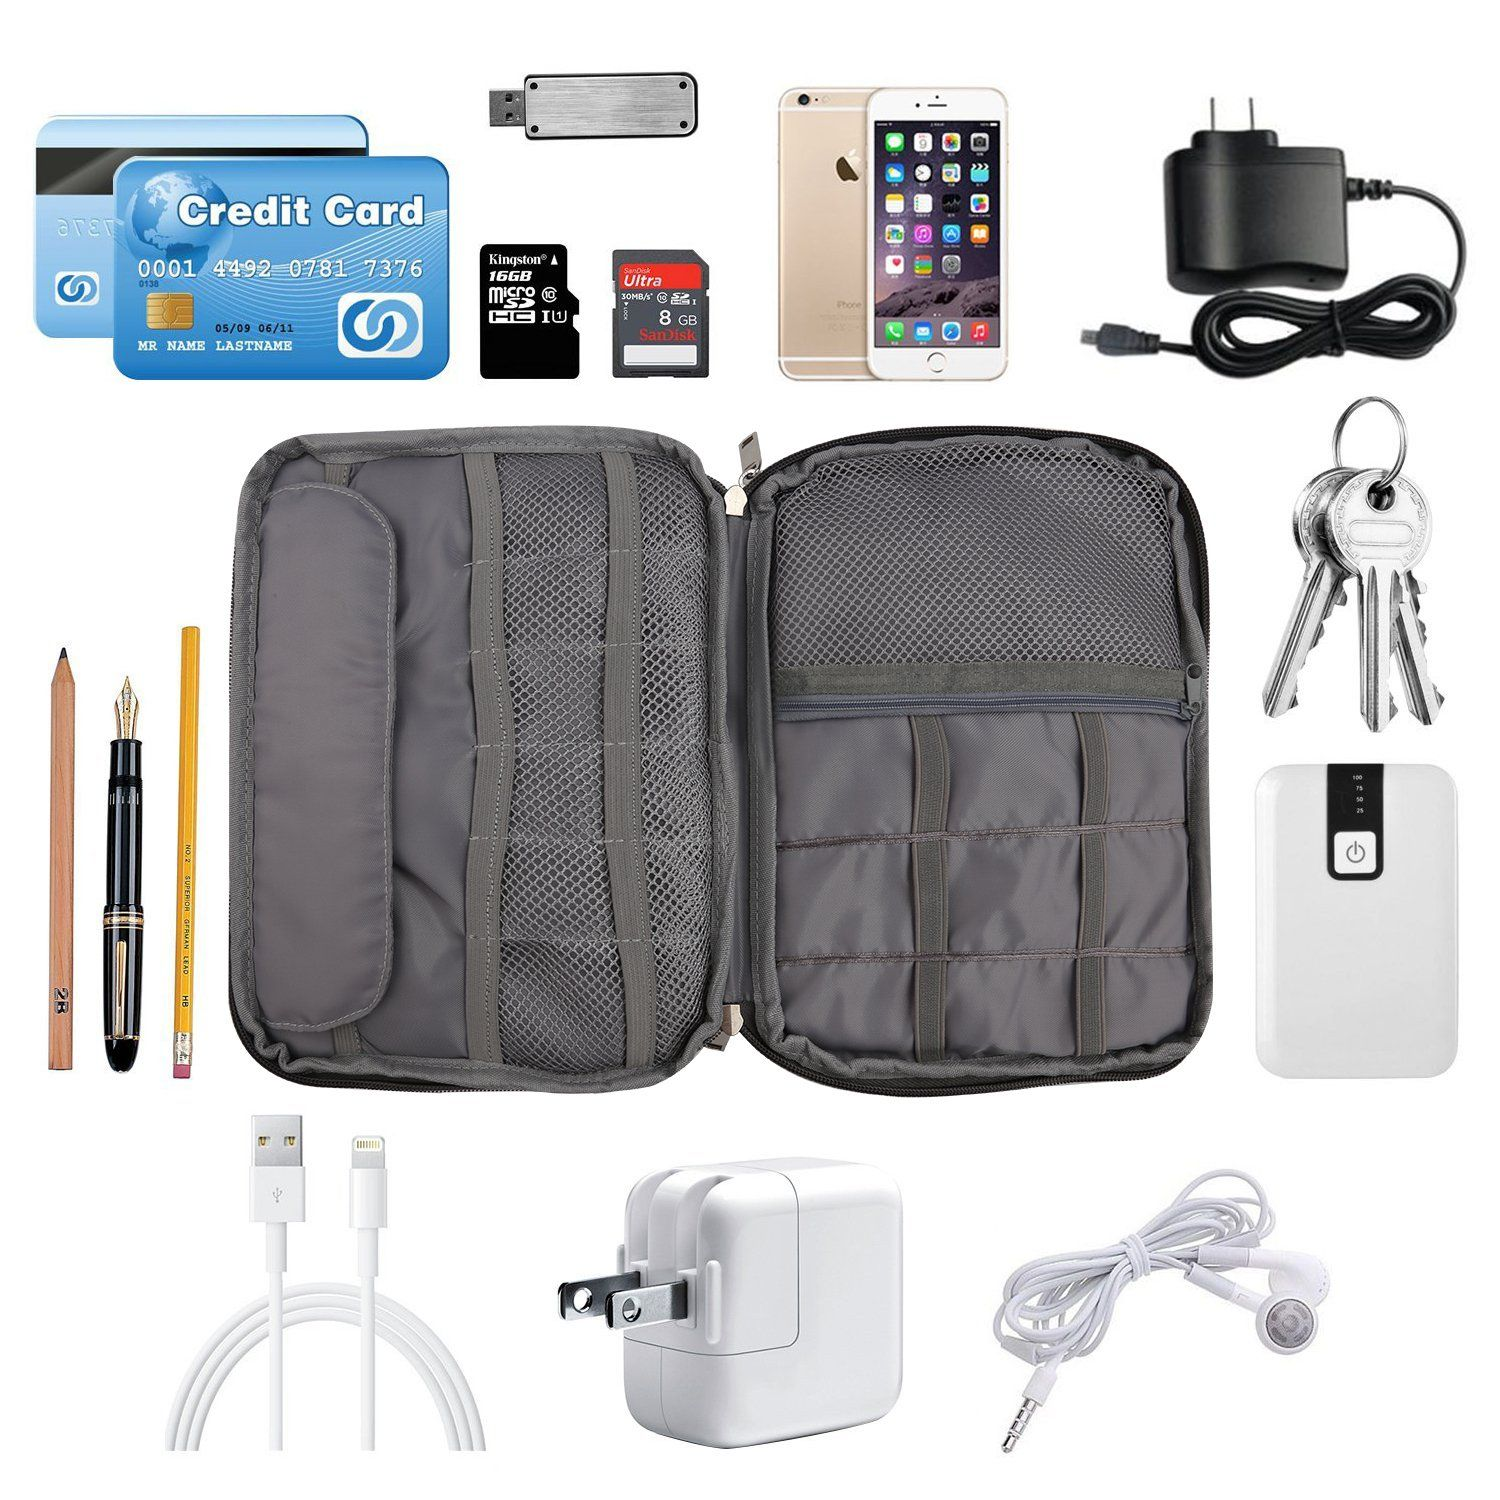 Electronics Travel Gadget Organizer Tech Bag Pritek Accessories Storage Carrying For Usb Cables Sd